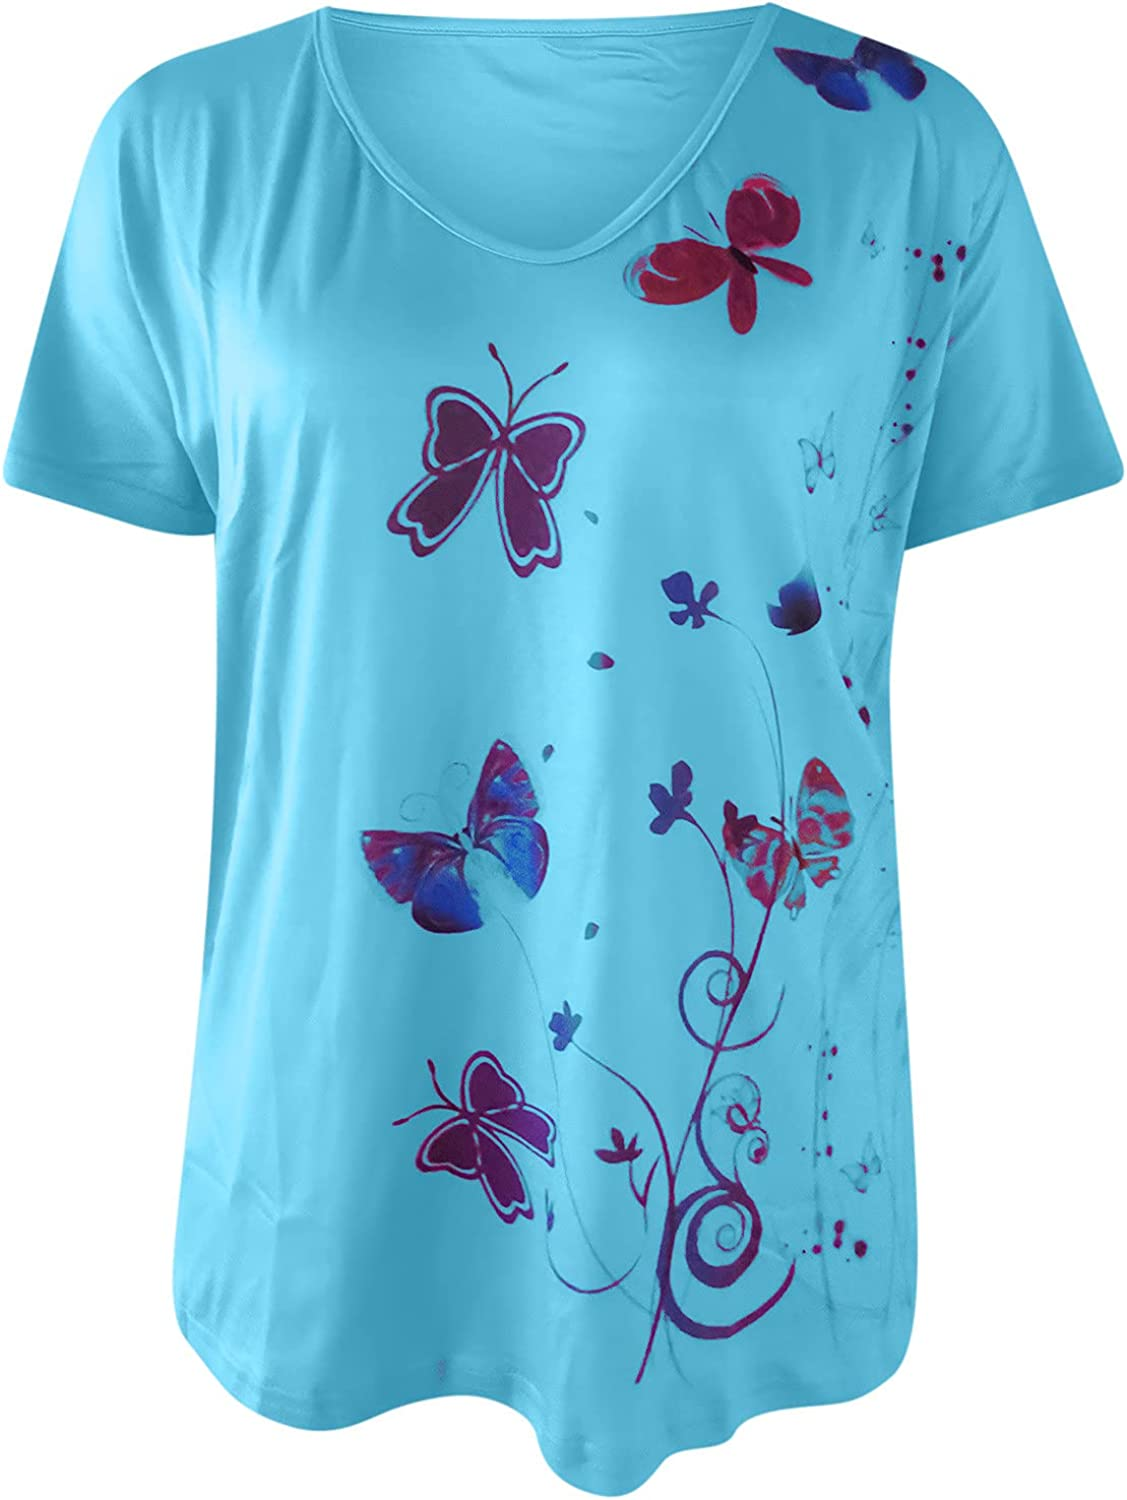 Women's Tops Summer Casual T Shirt V-Neck Blouse Butterfly Print Loose Tunic Fashion Short Sleeve